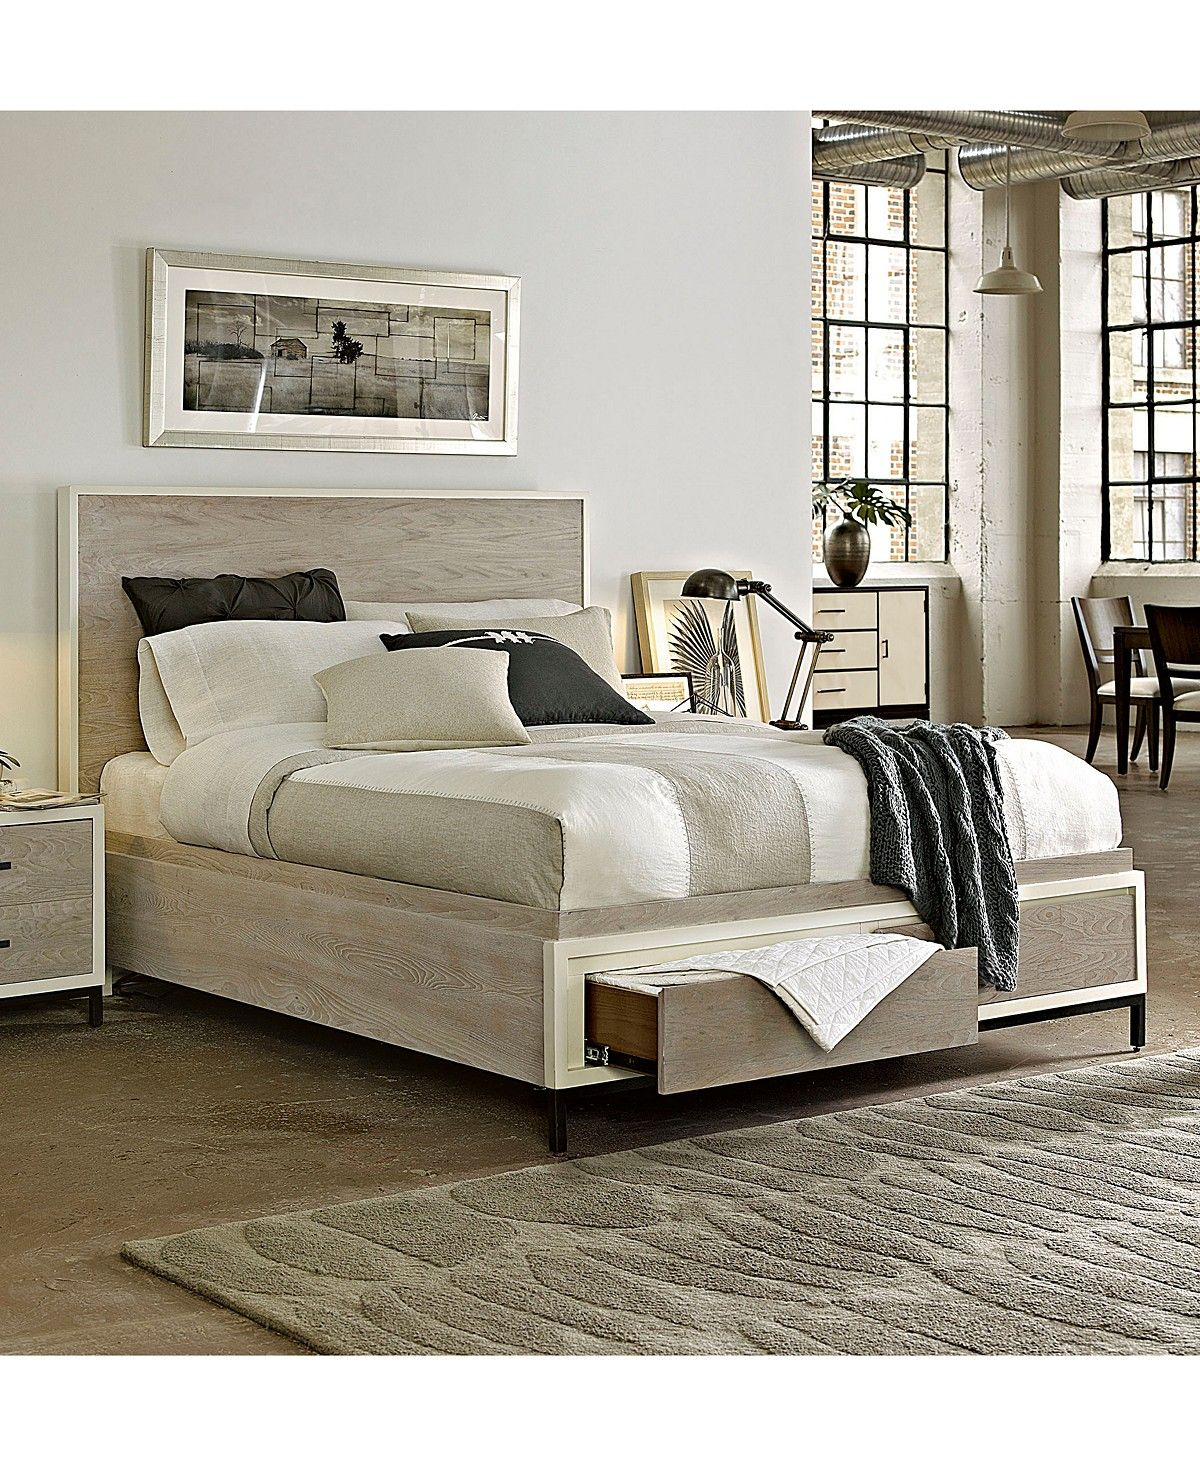 The Avery Storage Bedroom Furniture Collection is beautifully ...